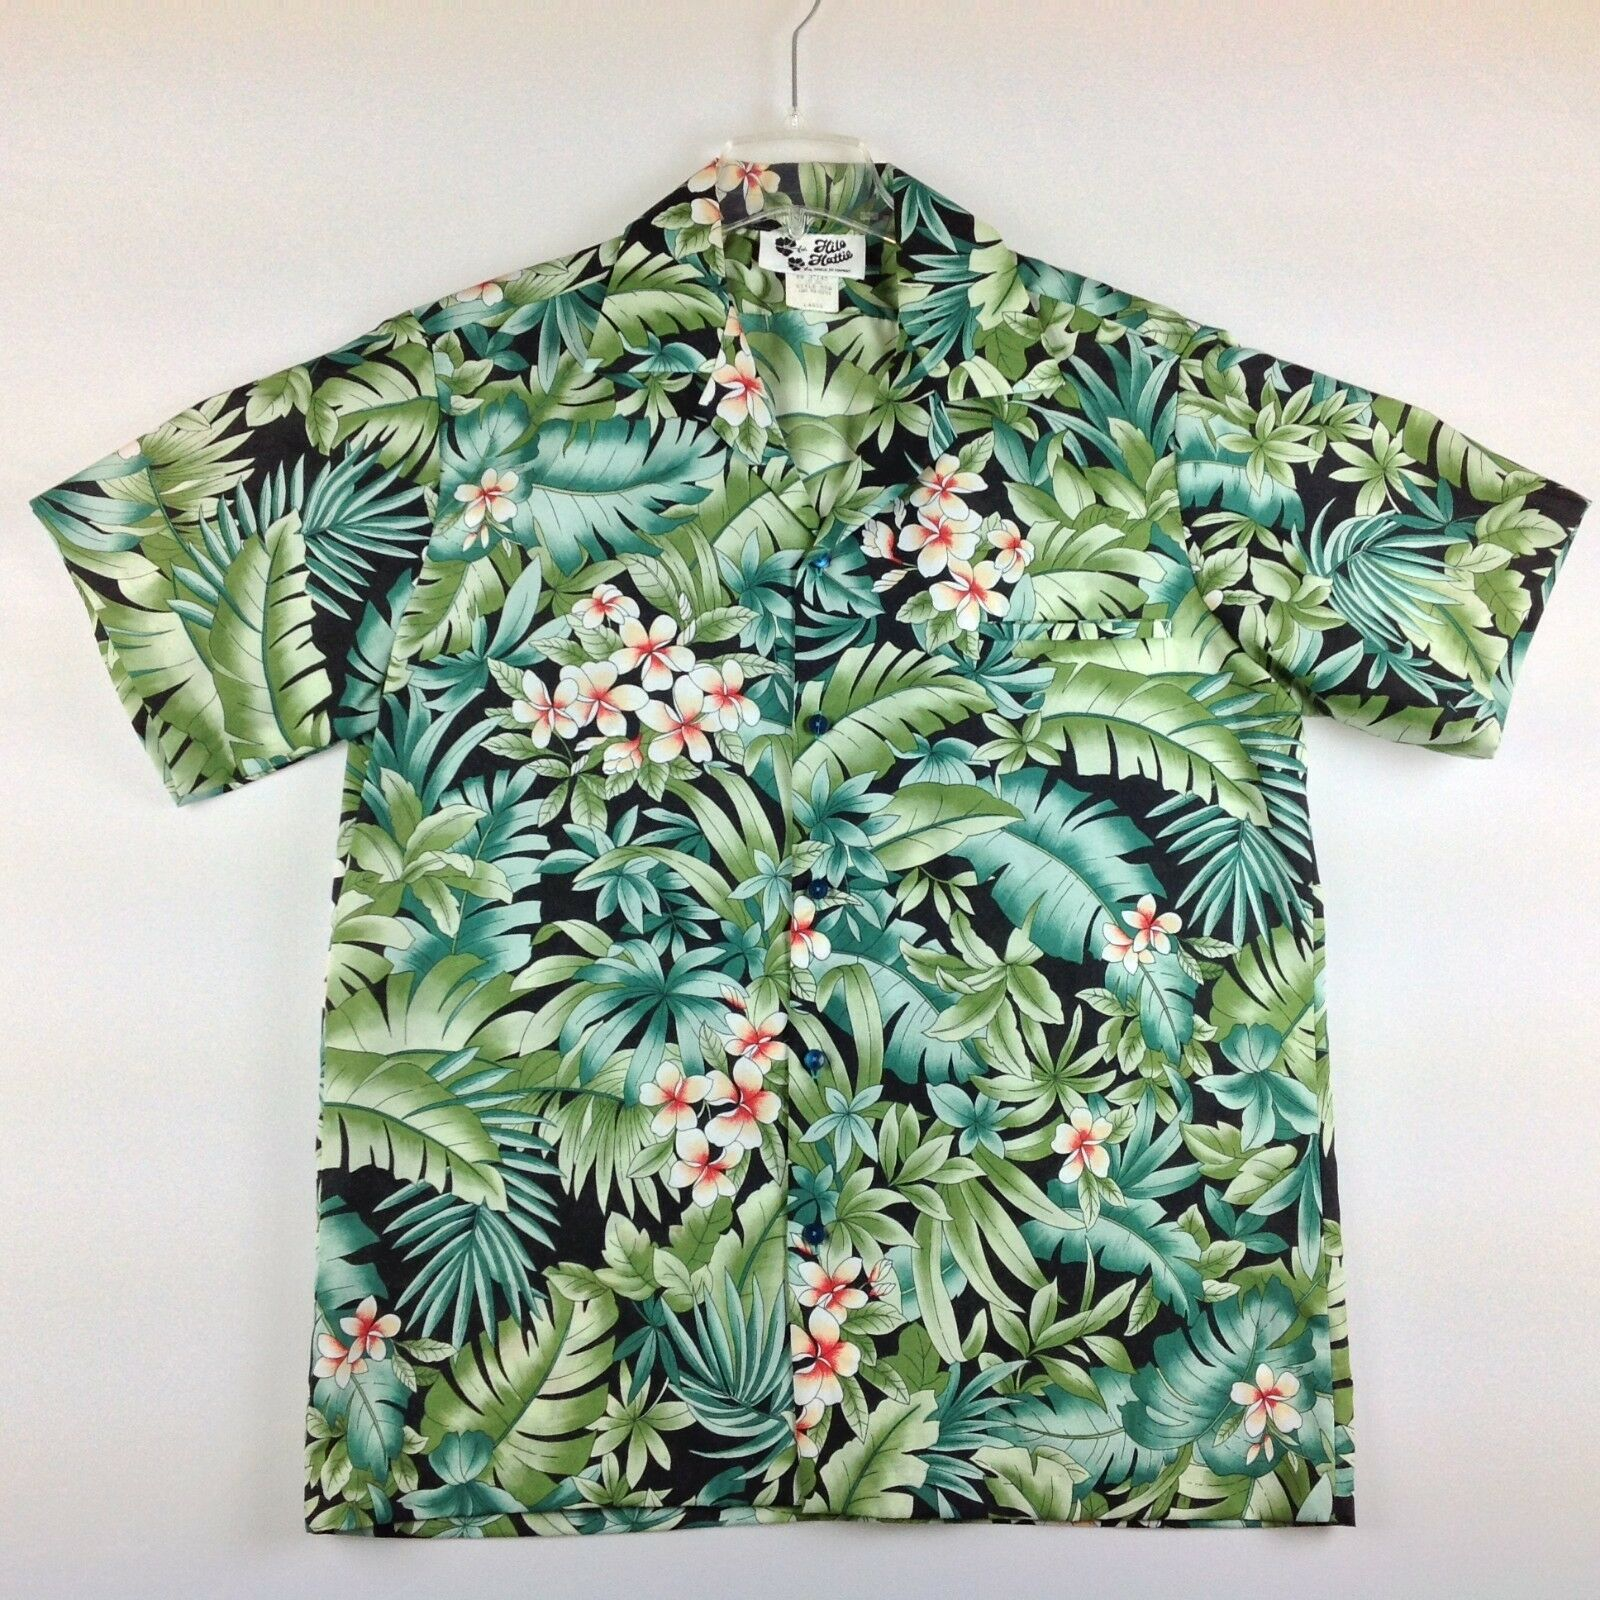 8a81e4e3 Vintage Hilo Hattie Shirt Men Large Camp Hawaiian Tropical USA ncpmhq24883-Casual  Shirts & Tops